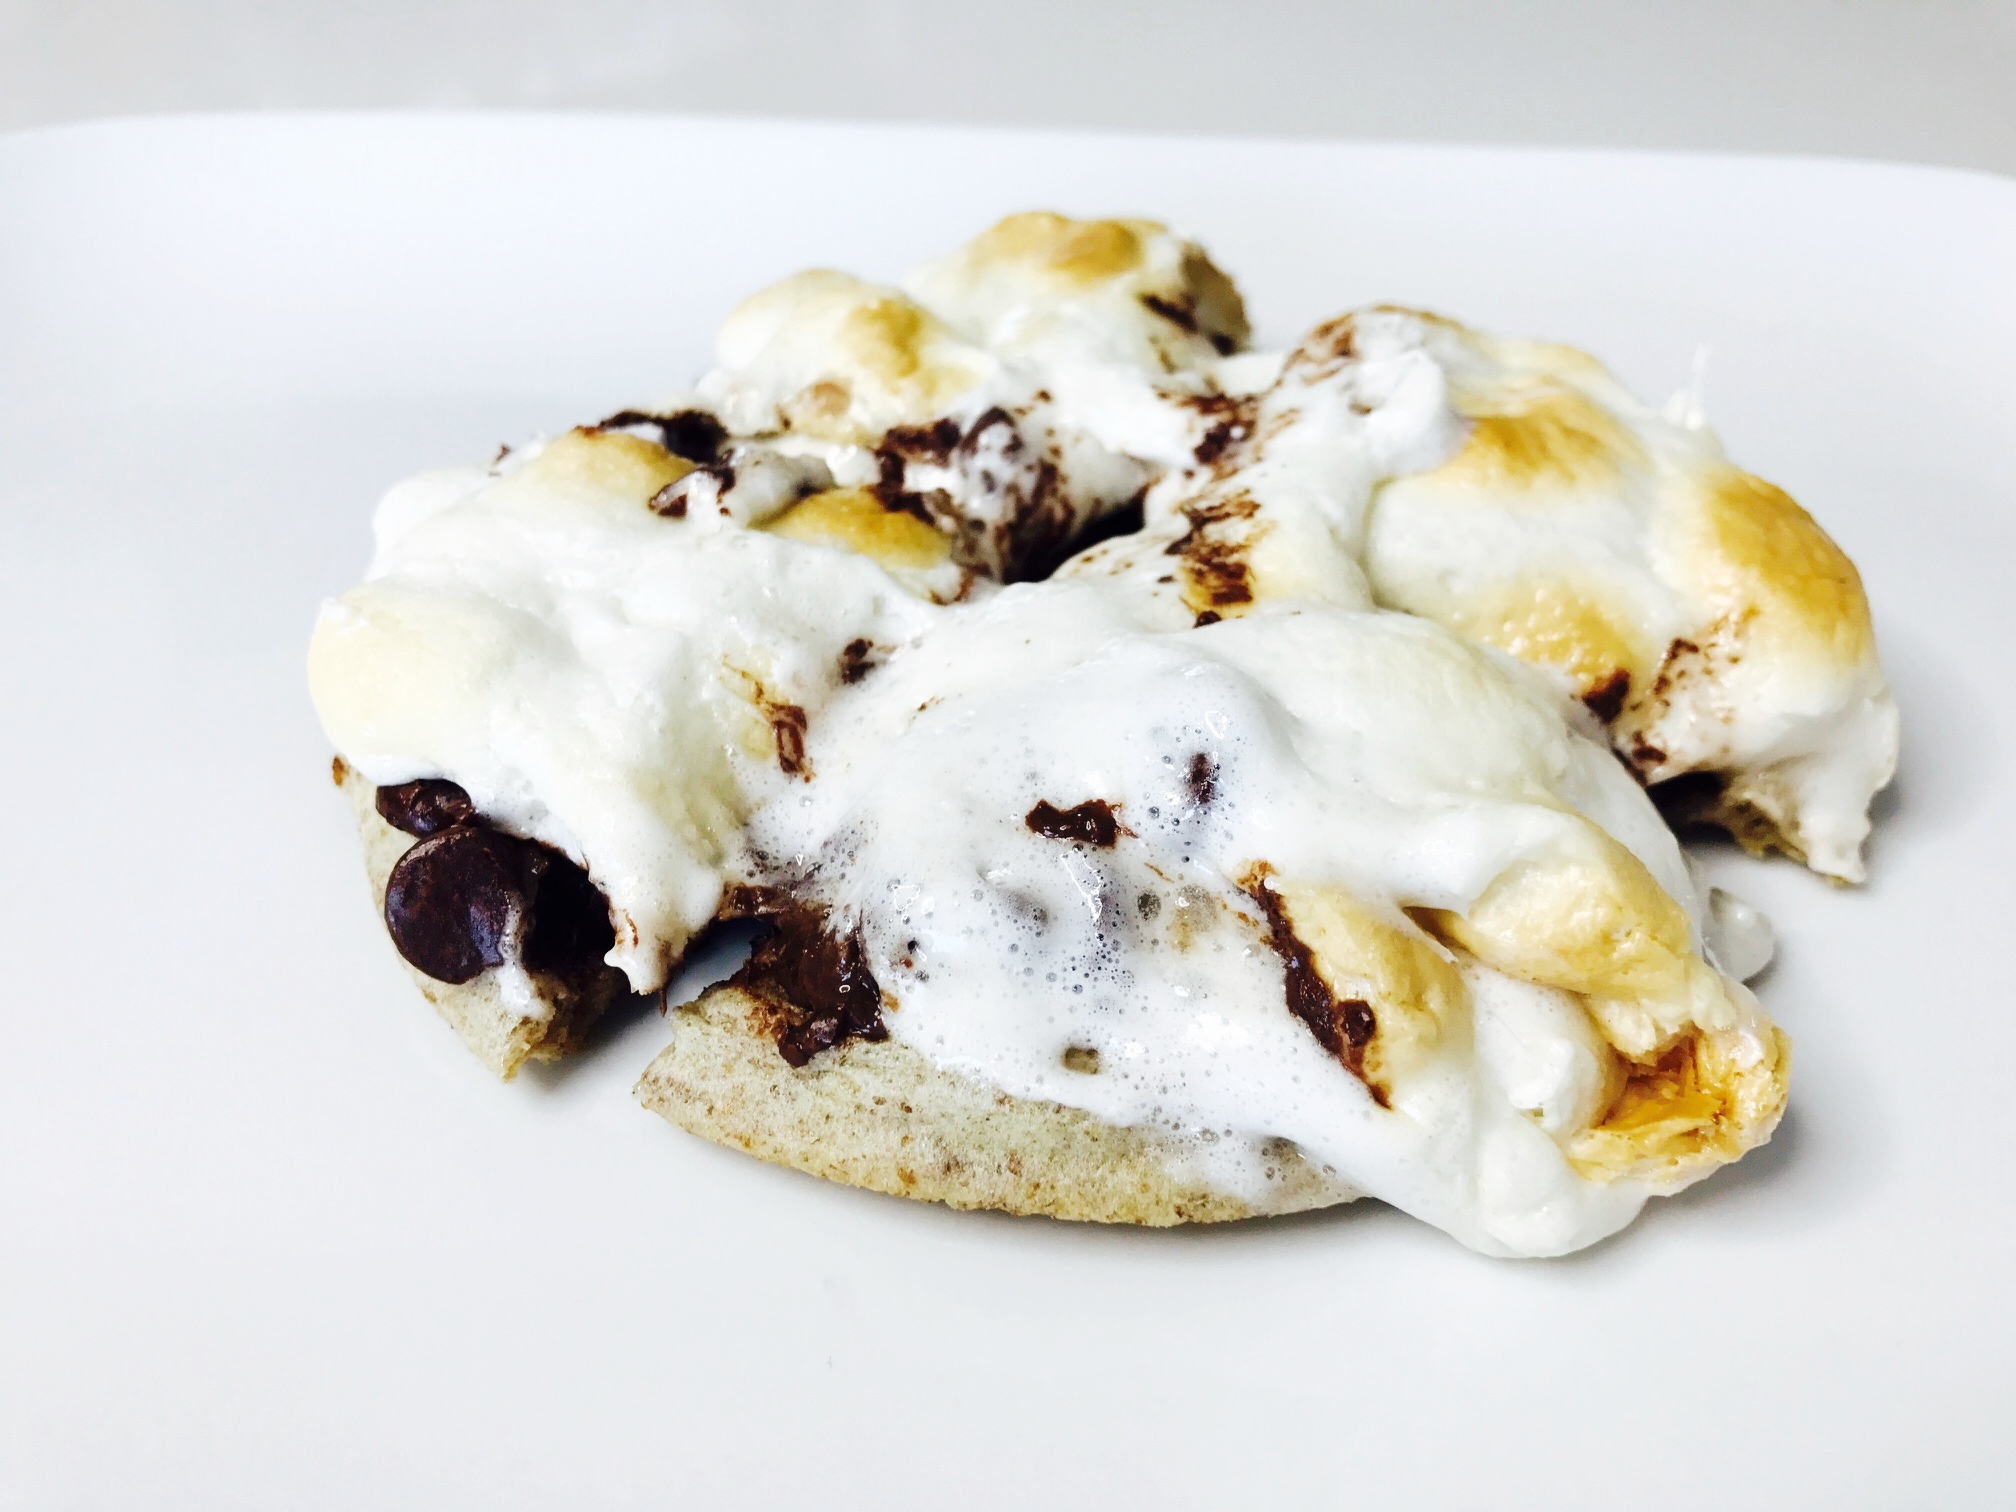 The chocolate chips and marshmallows melt perfectly into the waffle.  Cut the waffle into four triangles - and serve right away!